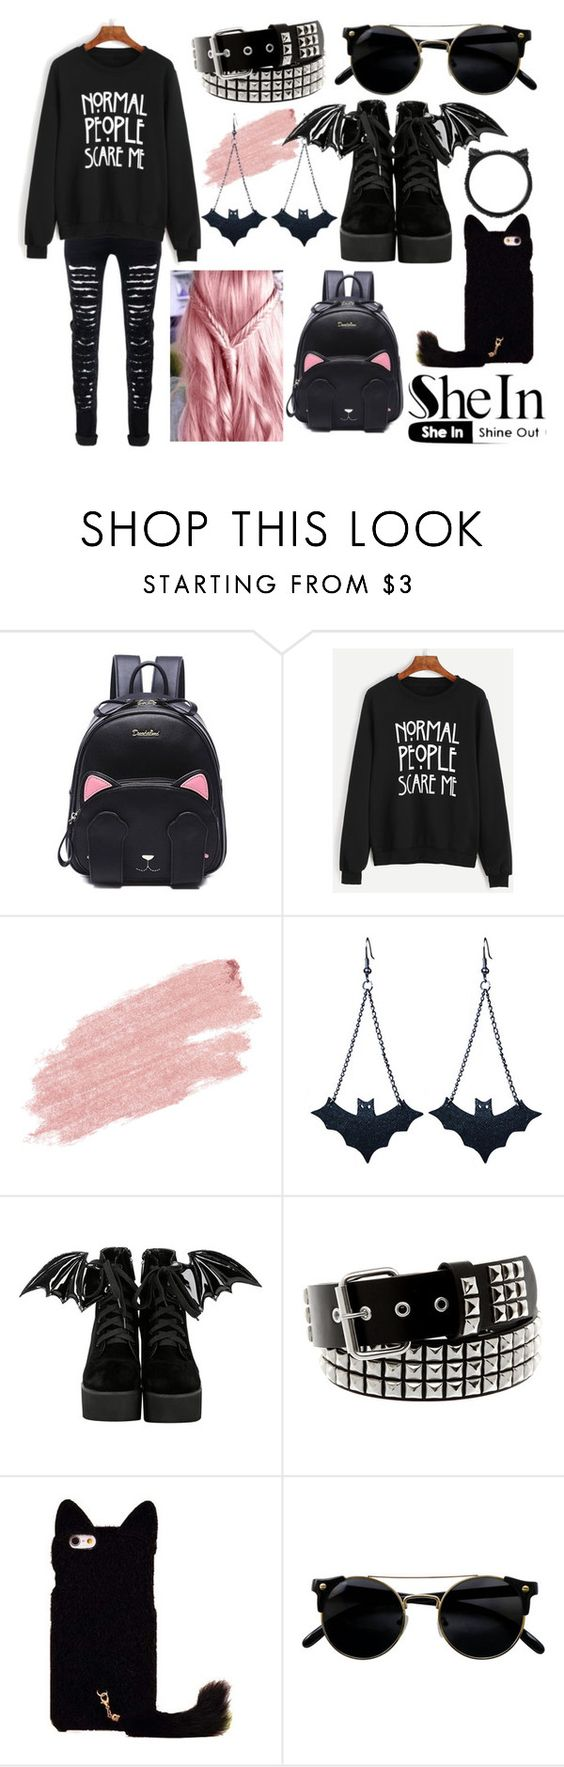 """""""Contest: Black Sewatshirt"""" by rebecca-miller-4 ❤ liked on Polyvore featuring Jane Iredale, Chicnova Fashion, Iron Fist and Kate Spade"""